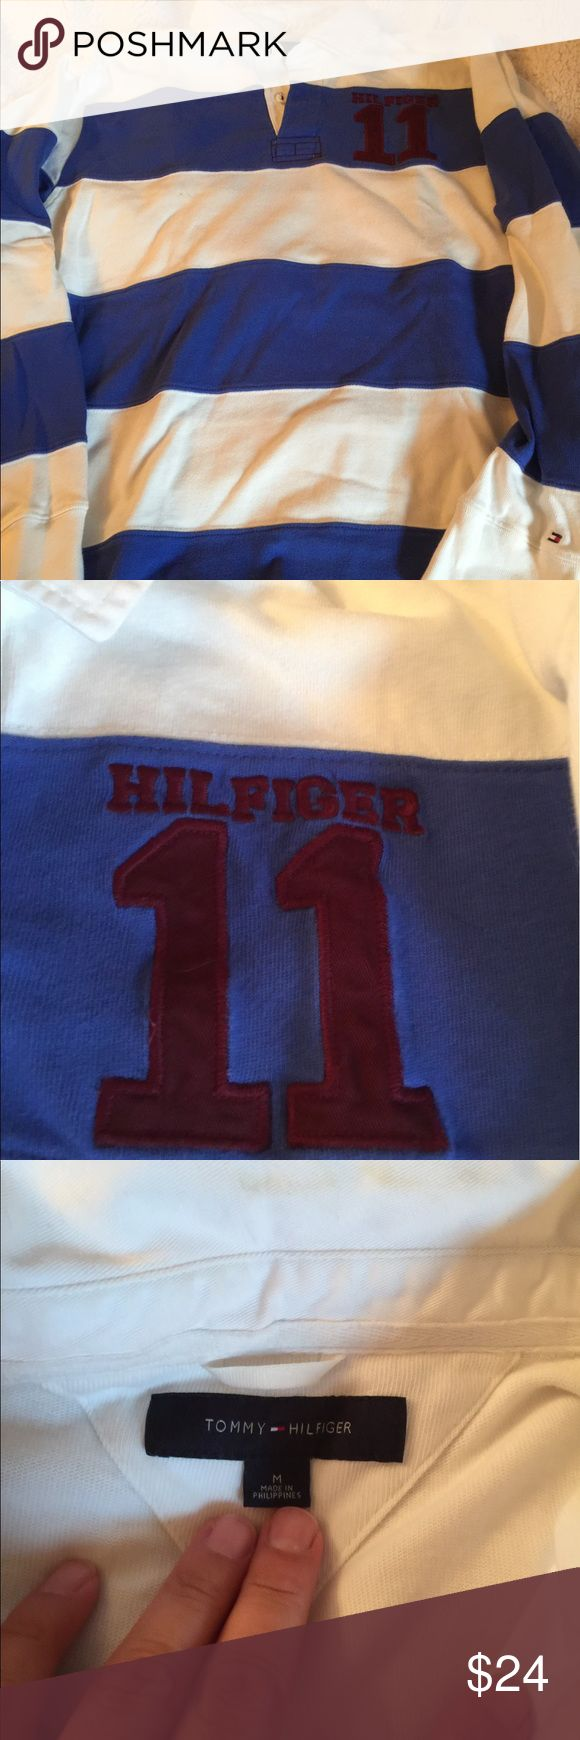 Tommy Hilfiger men's M rugby jersey blue white Tommy Hilfiger men's M rugby jersey blue white like new worn once Tommy Hilfiger Shirts Tees - Long Sleeve